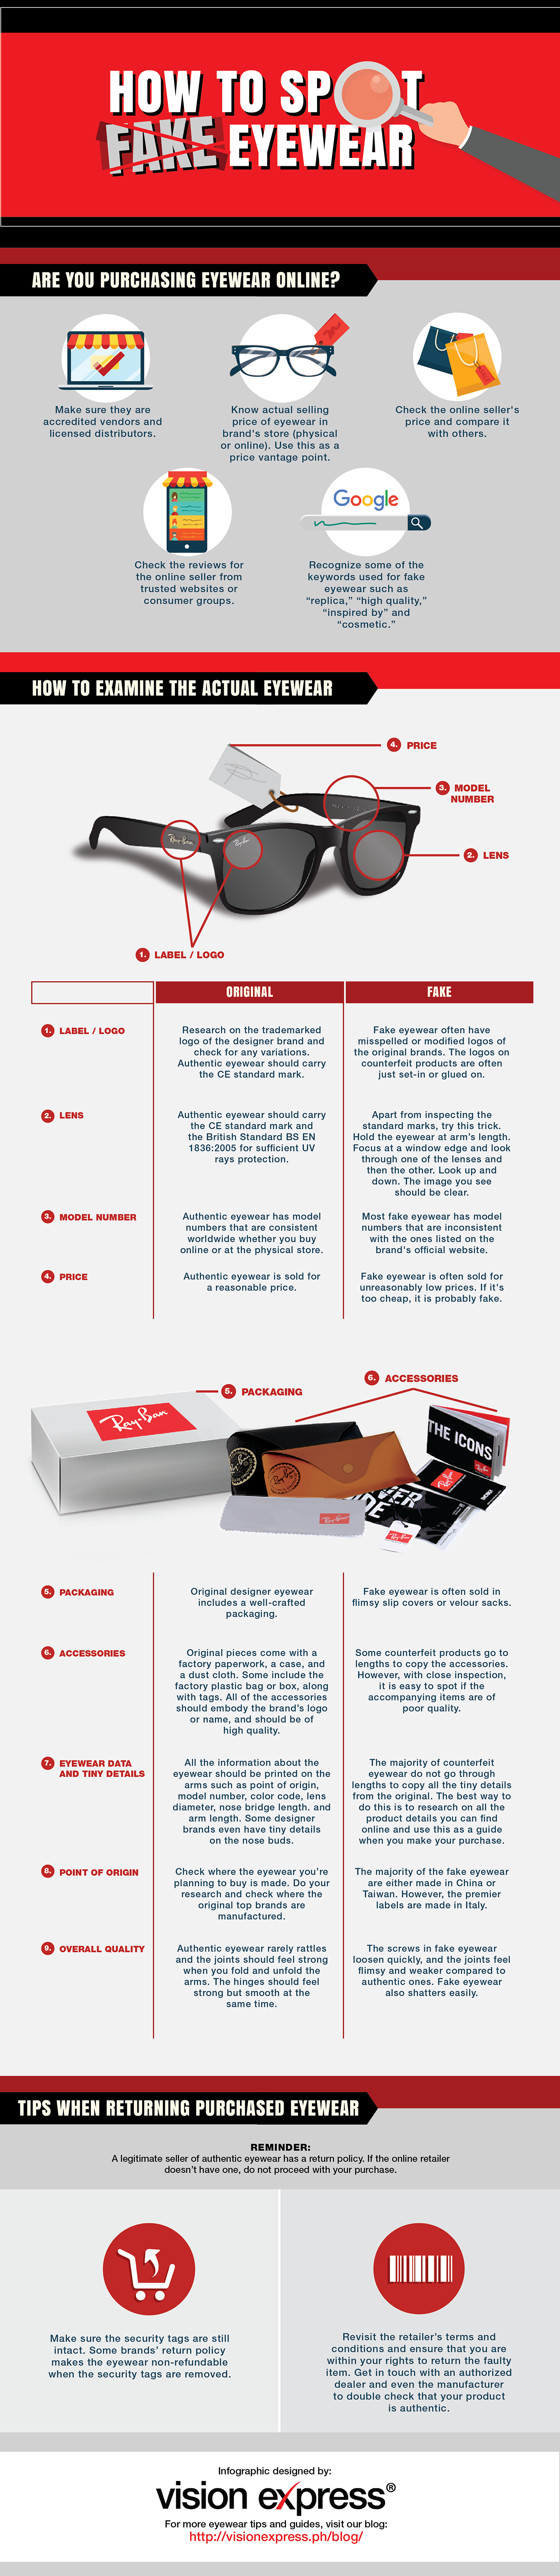 How to Spot Fake Eyewear #infographic